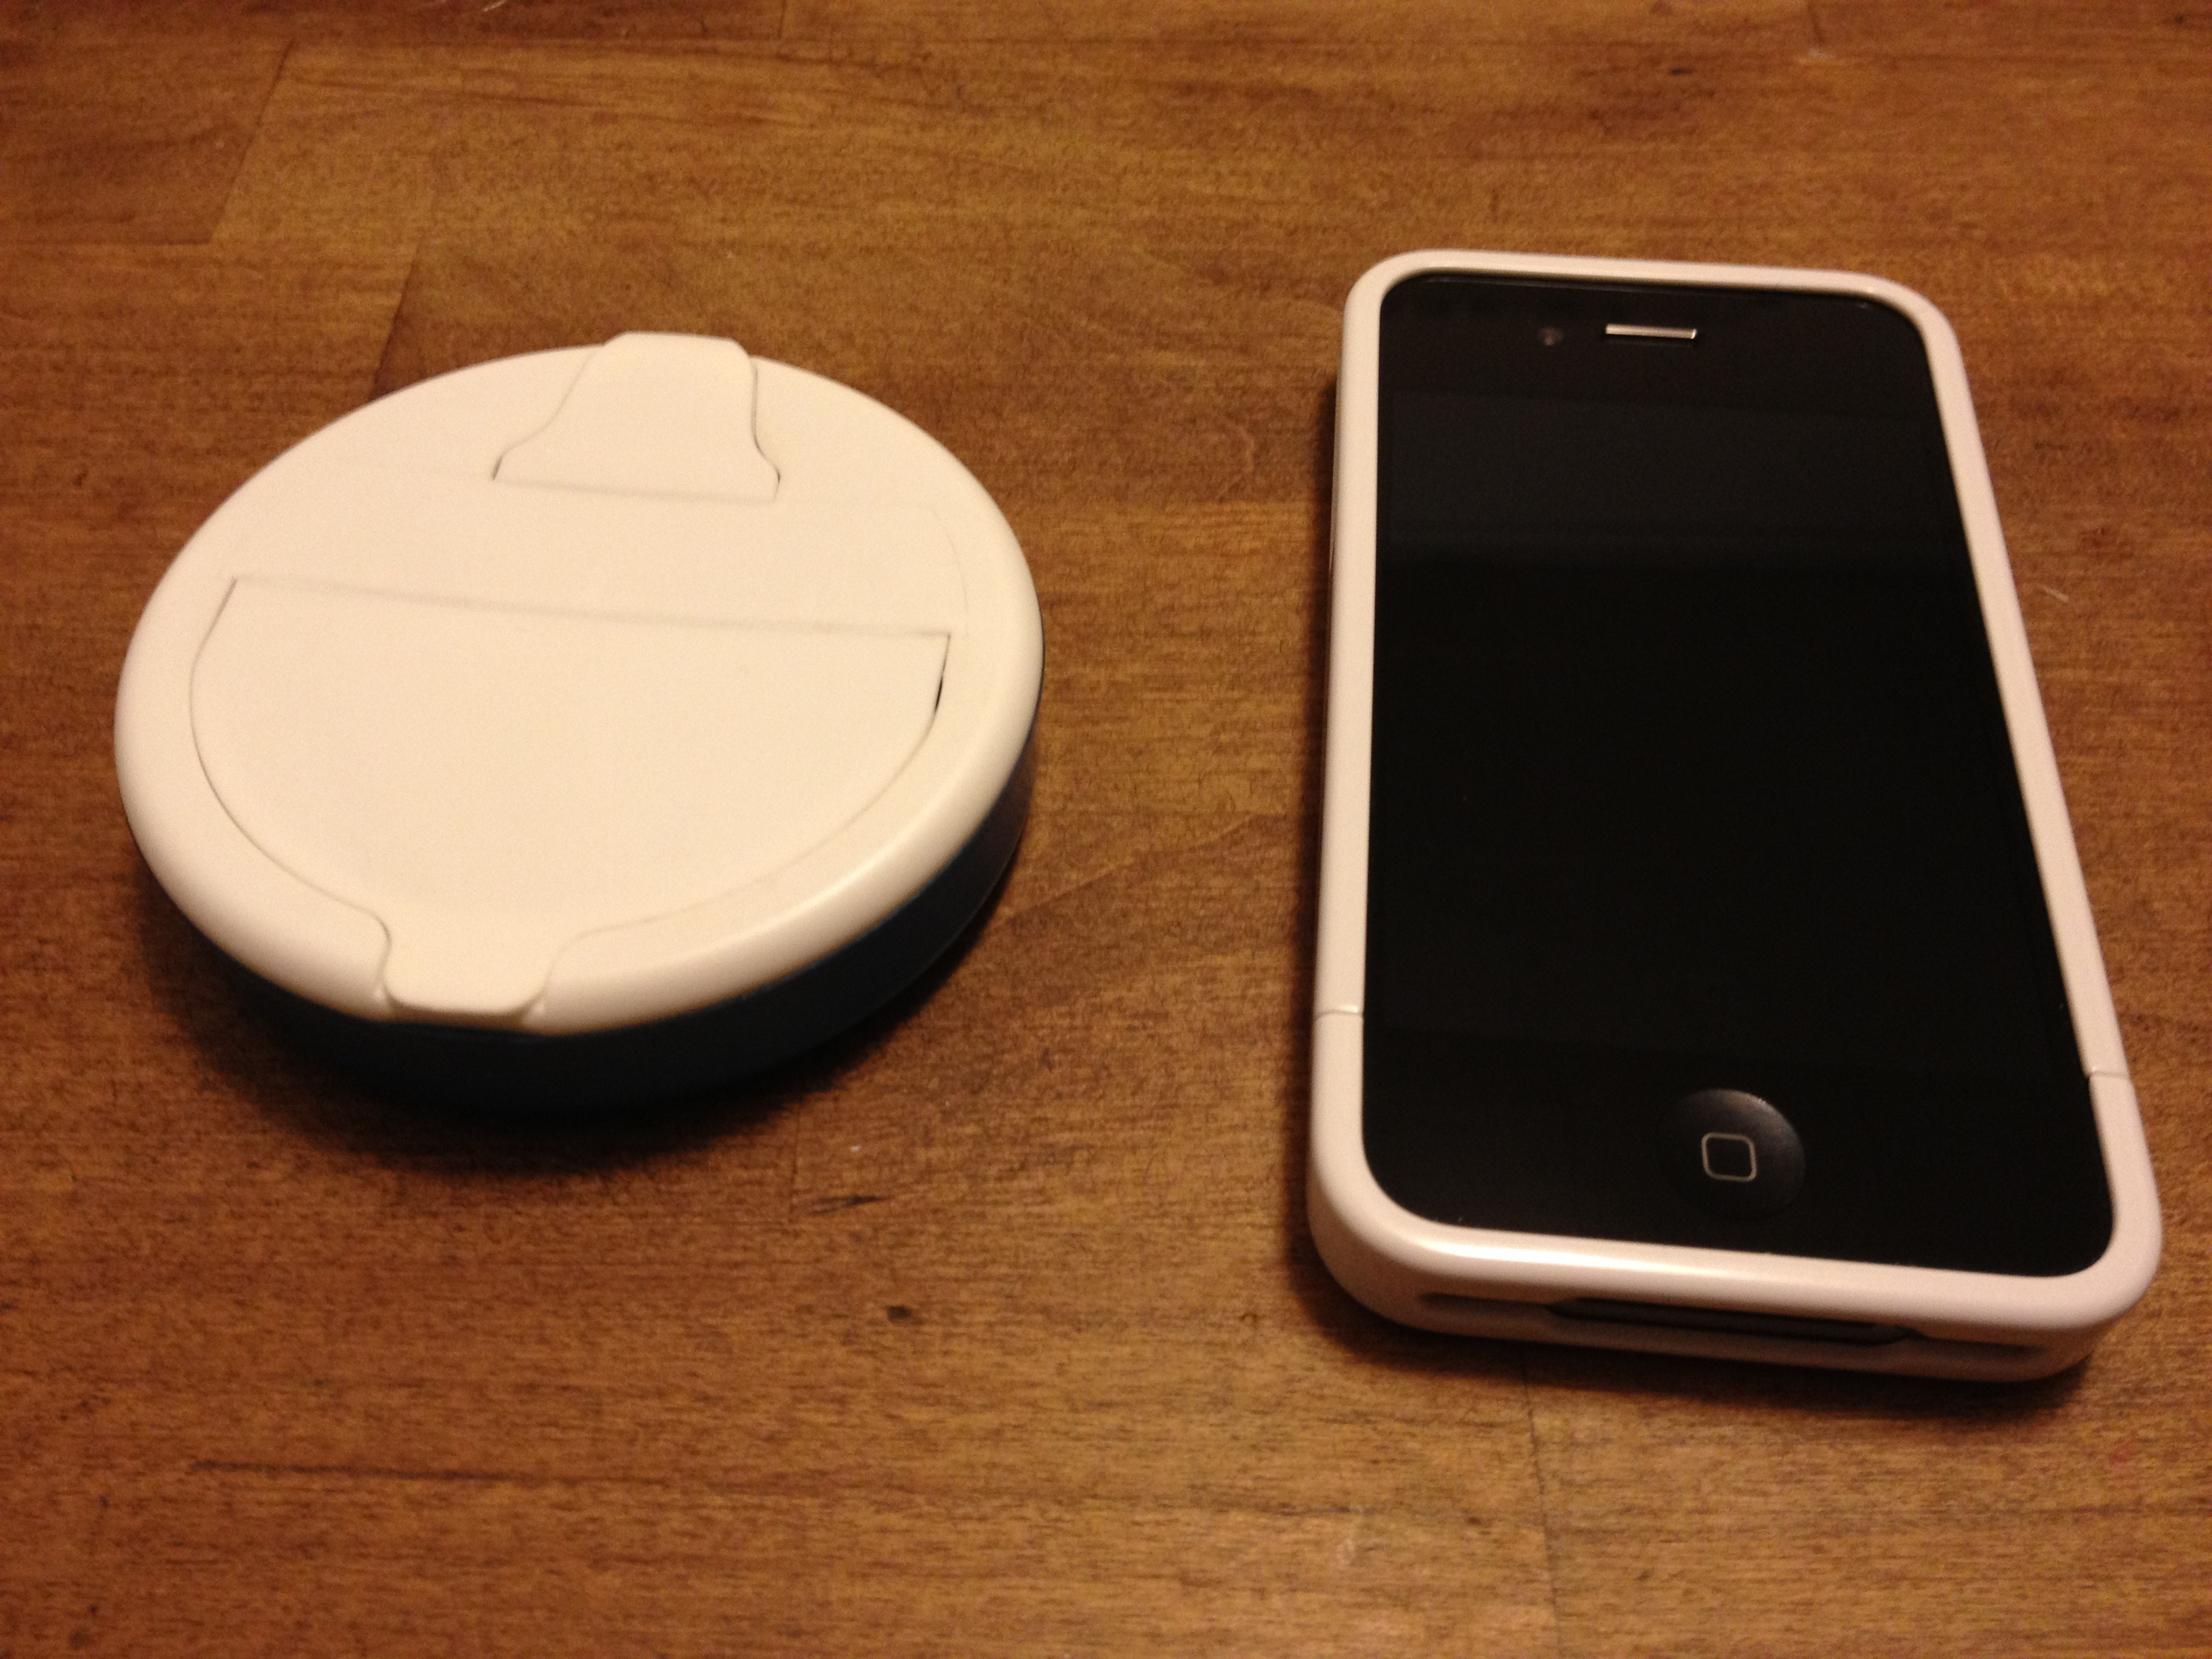 Ice Breakers Stand for iPhone 4, 4S, or OriginaliPhone